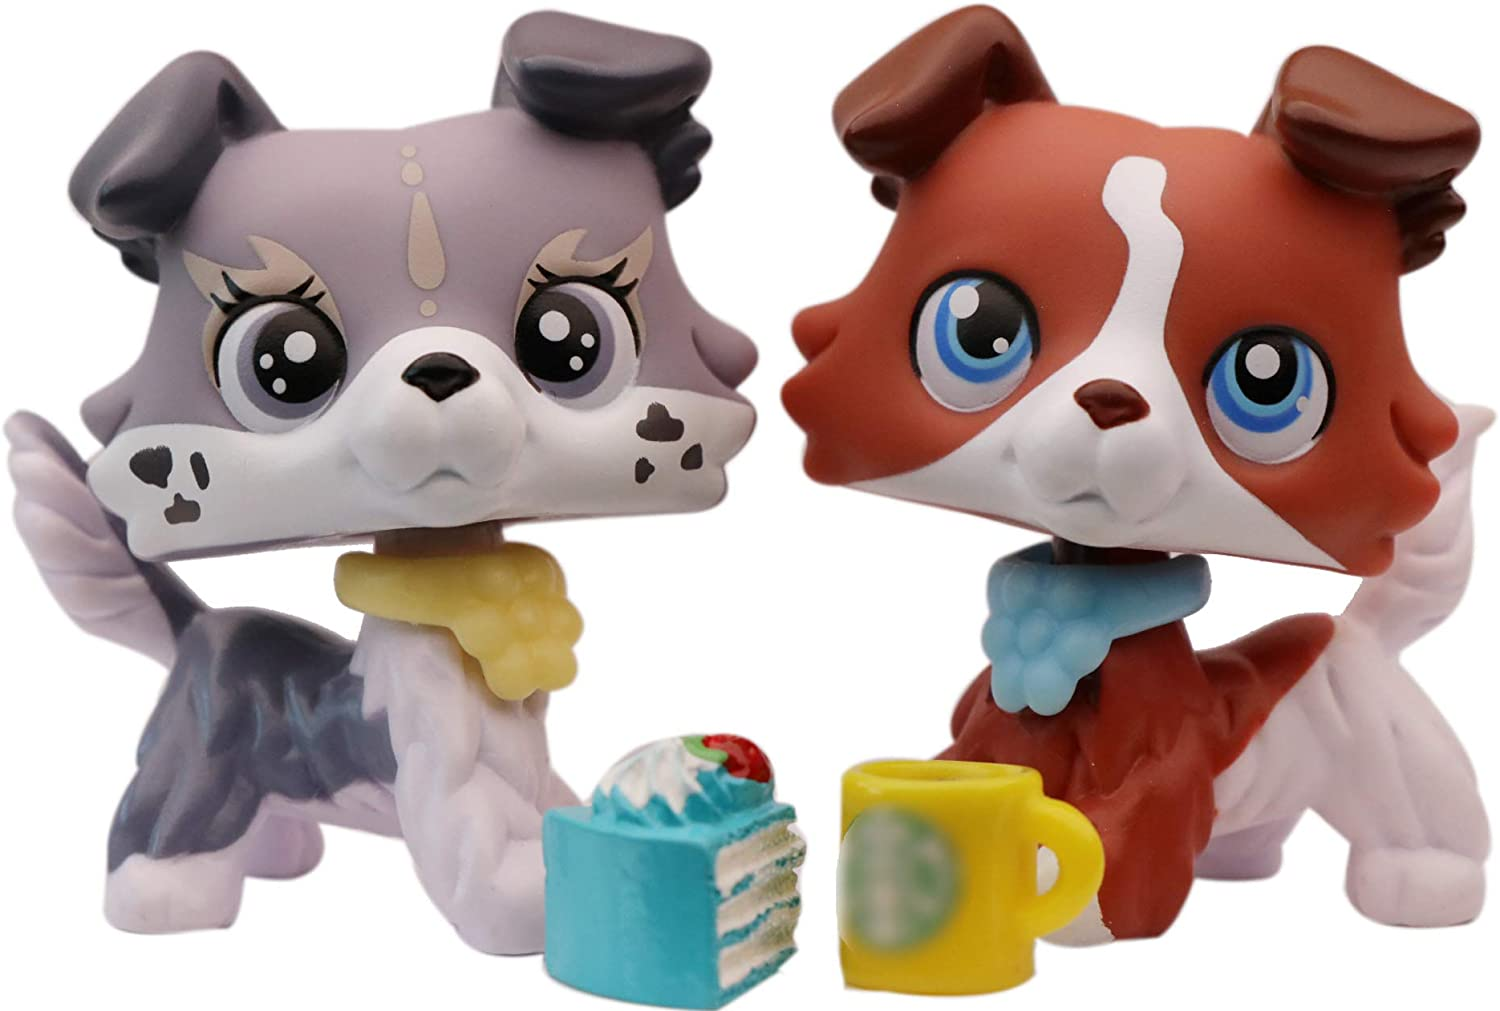 lpsloverqa Collie Lot Vanilla Collie Coffee Collie Custom Made Blue Eyes Dog Puppy with Accessories Lot Figures Collection Boys Girls Kids Gift Set 2020